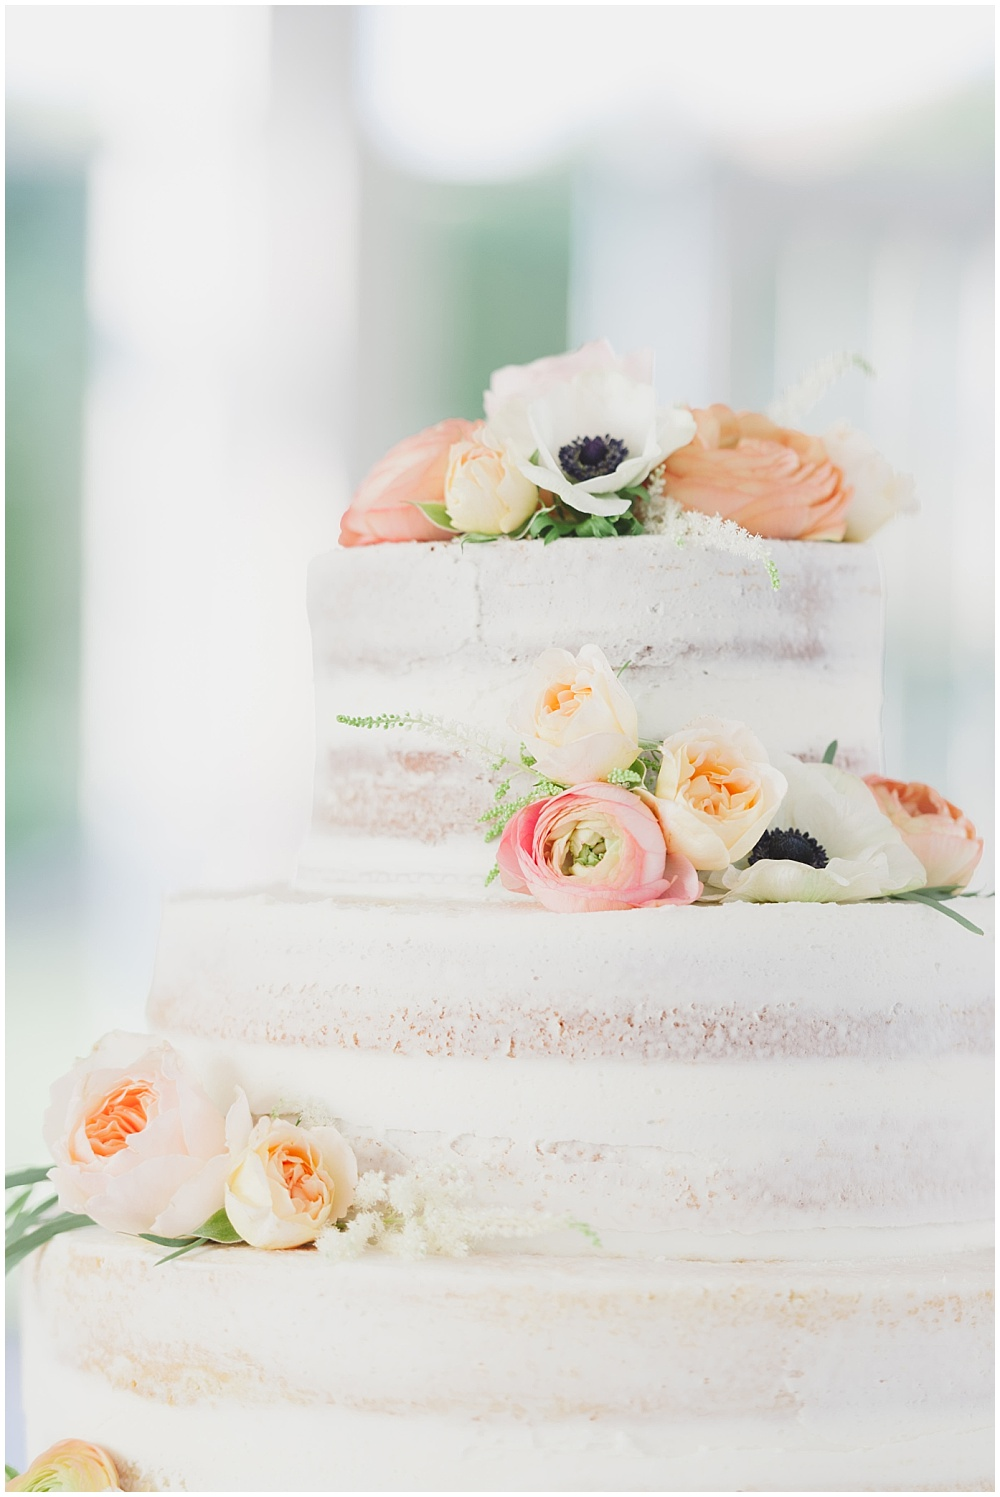 Elegant naked cake with spring flowers | Ritz Charles Garden Pavilion Wedding by Stacy Able Photography & Jessica Dum Wedding Coordination